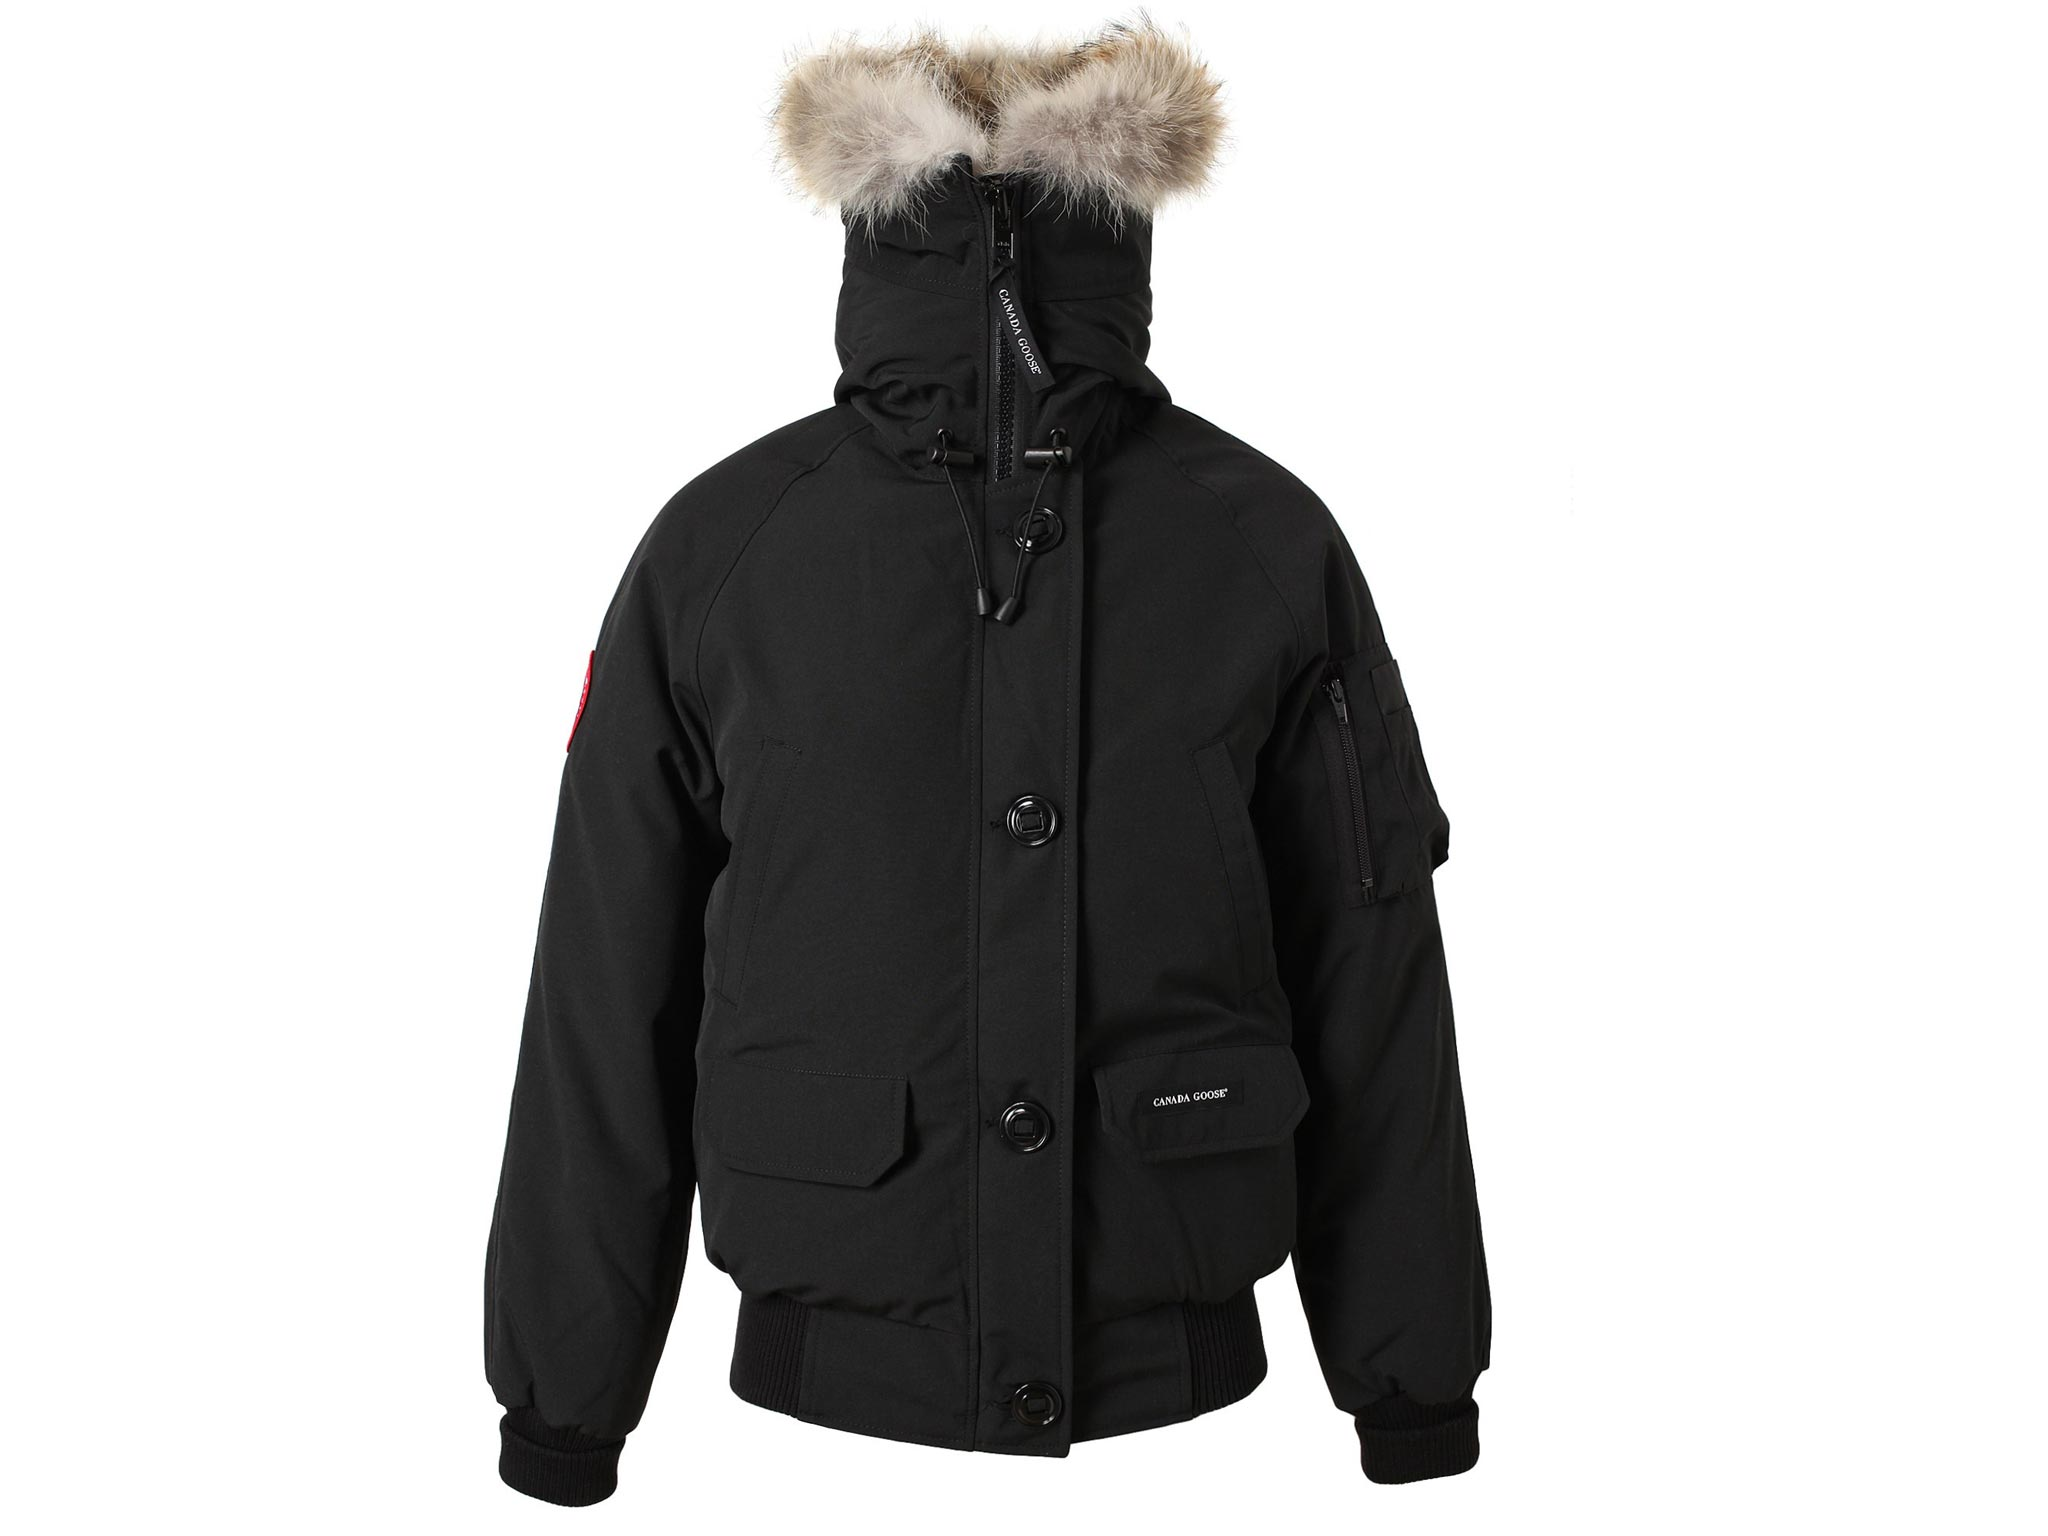 82b5cc5b5 The 50 Best coats and jackets | The Independent